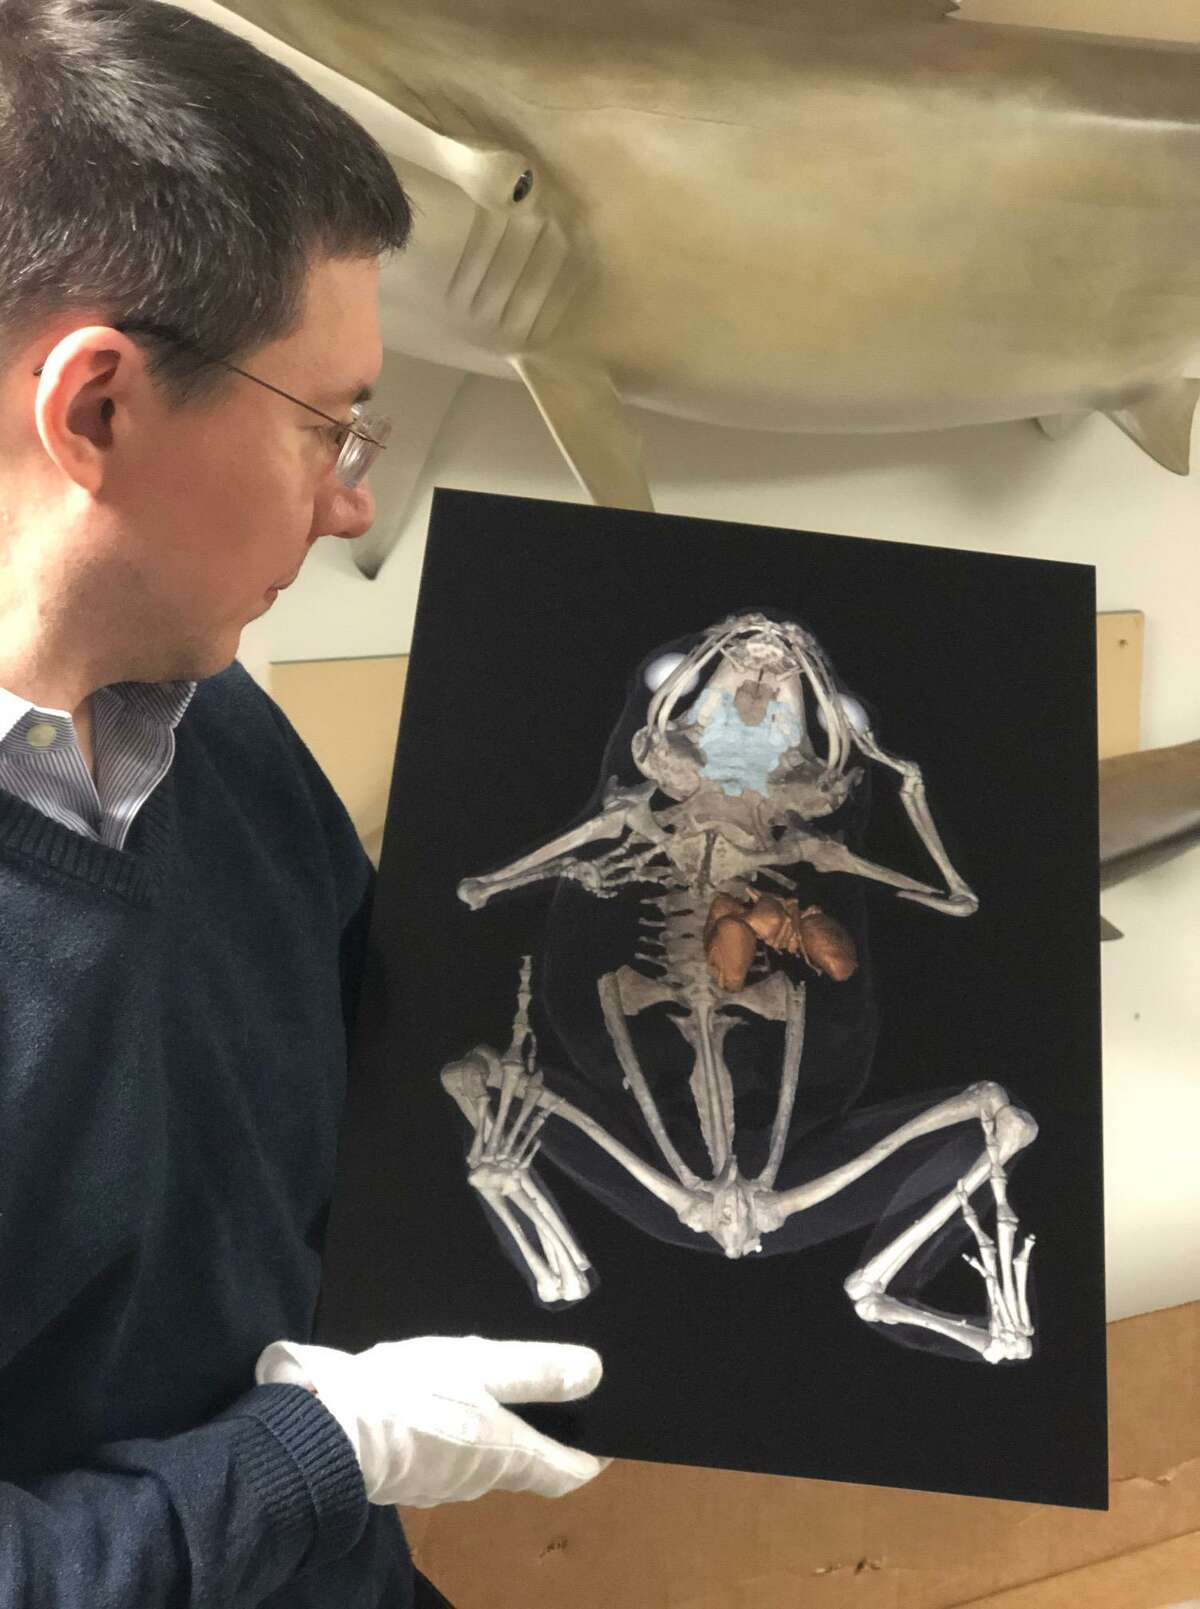 Daniel Ksepka, Curator of Science, with a CT scan rendering of a miniature frog, revealing an ant inside its digestive tract.